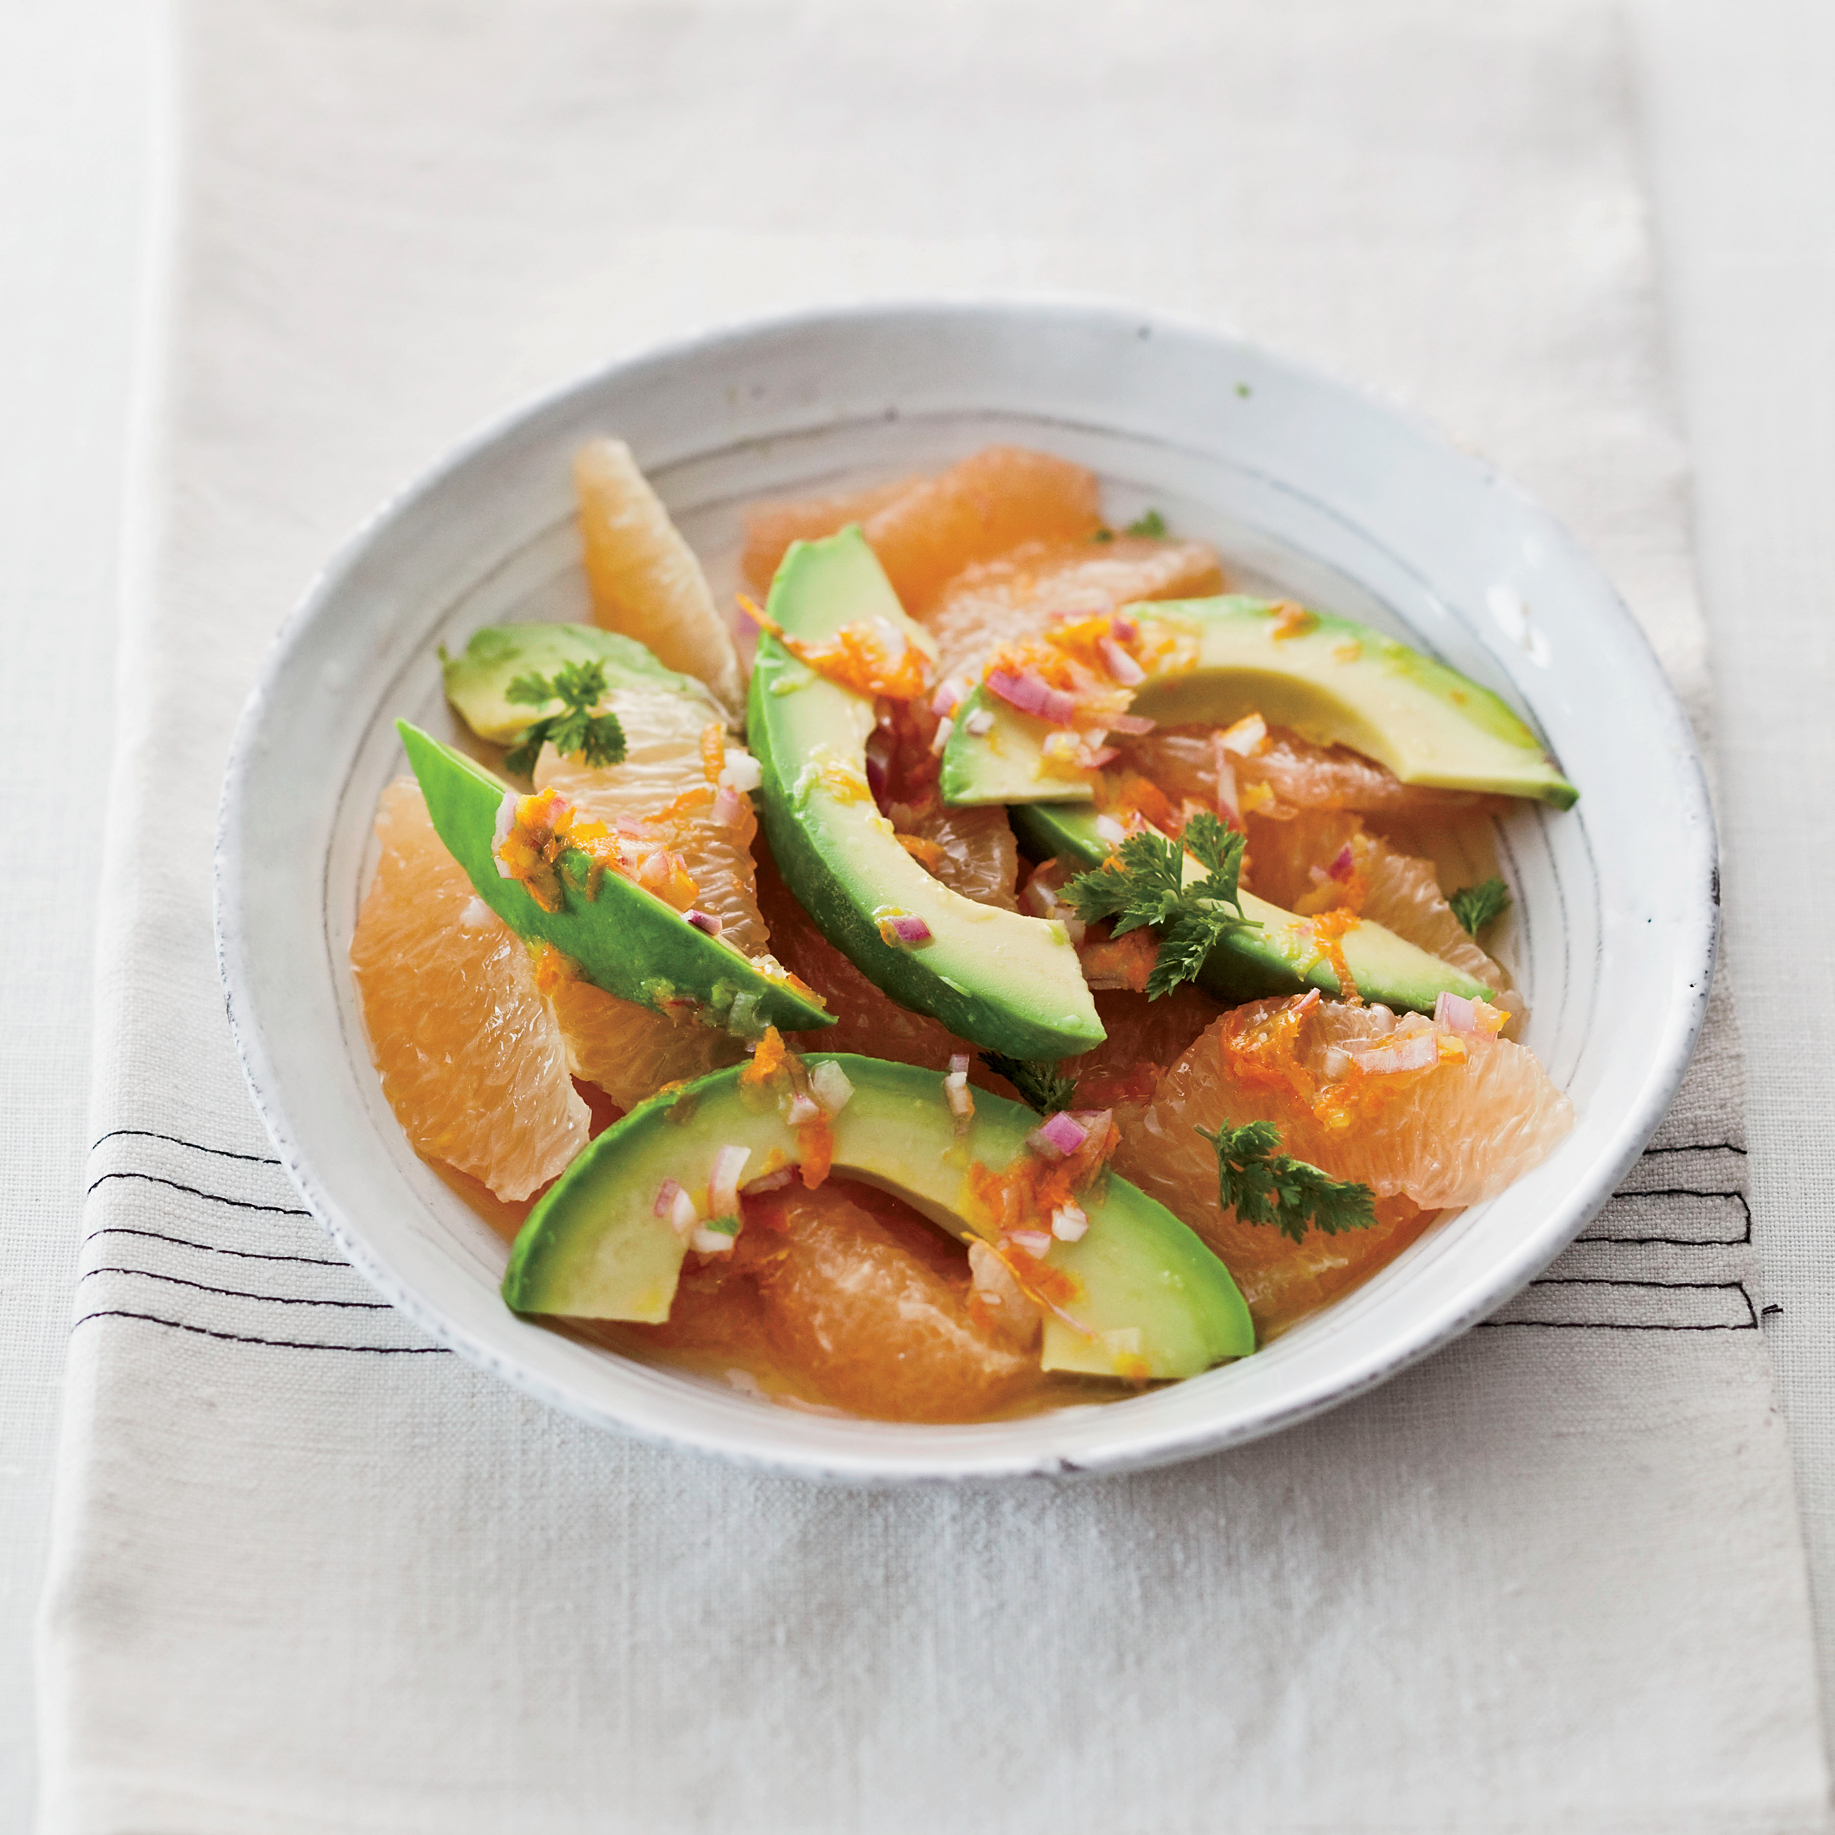 Pink-Grapefruit-and-Avocado Salad. Photo © Quentin Bacon